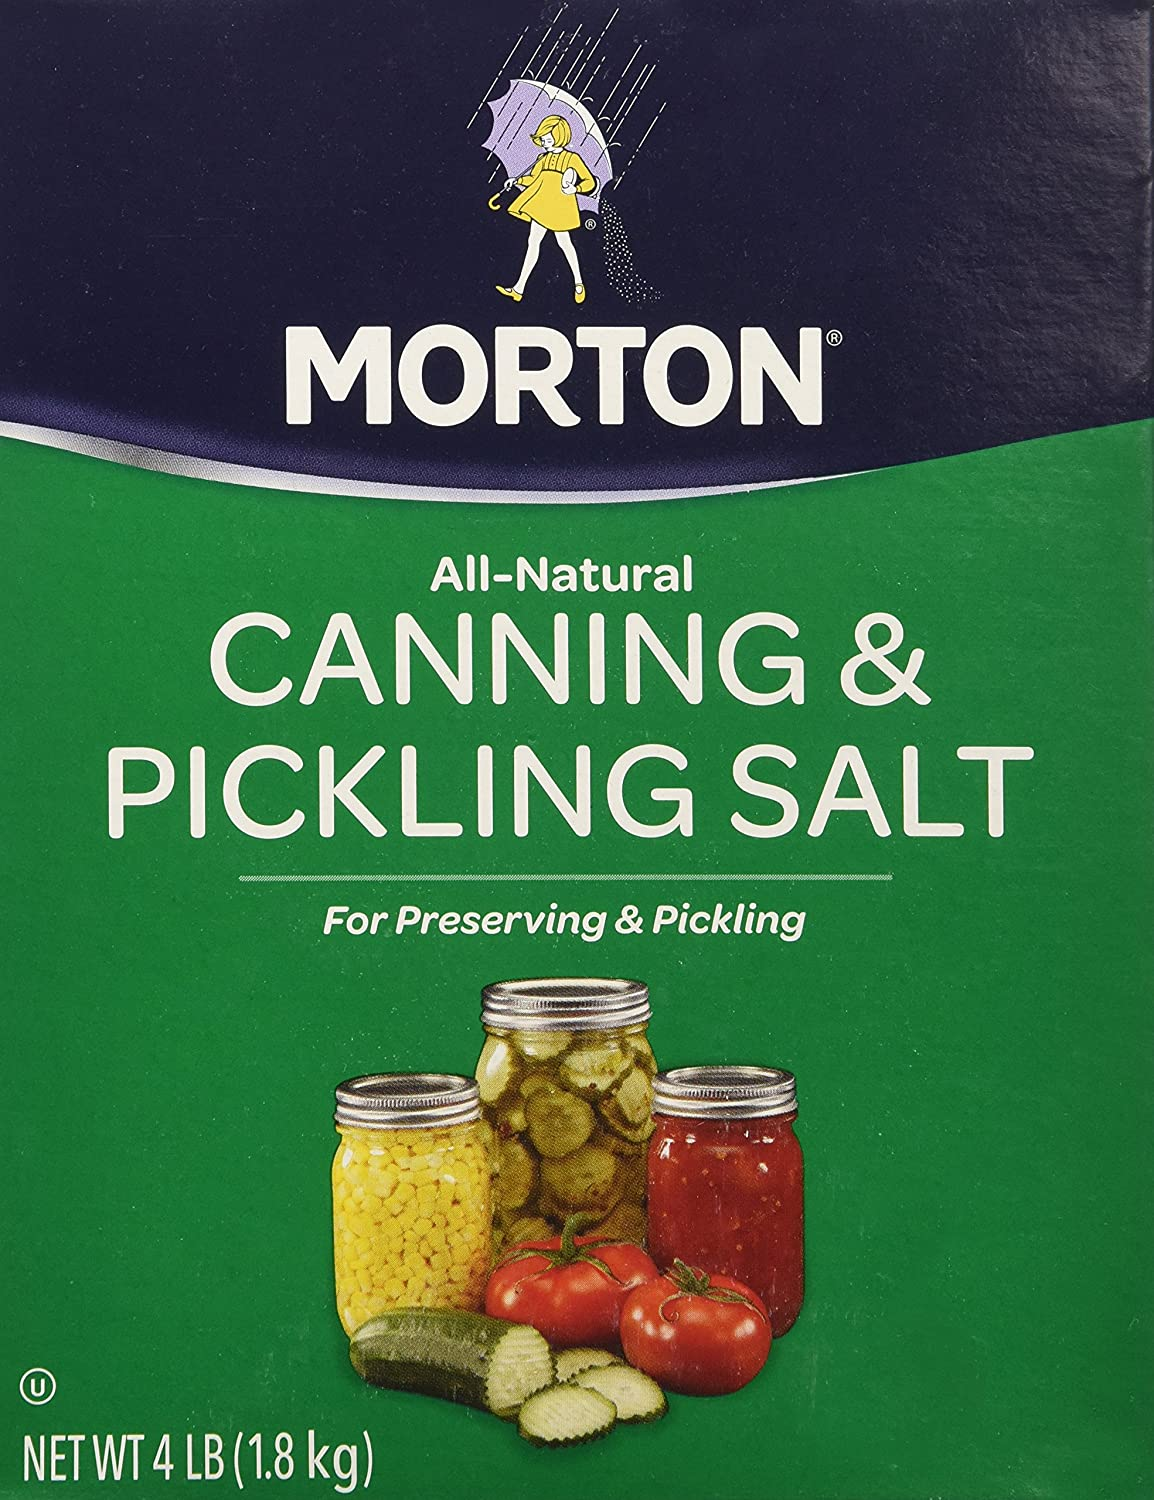 Morton Canning an Pickling Salt 4 lb box (2 Pack) : Allspice Spices And Herbs : Grocery & Gourmet Food